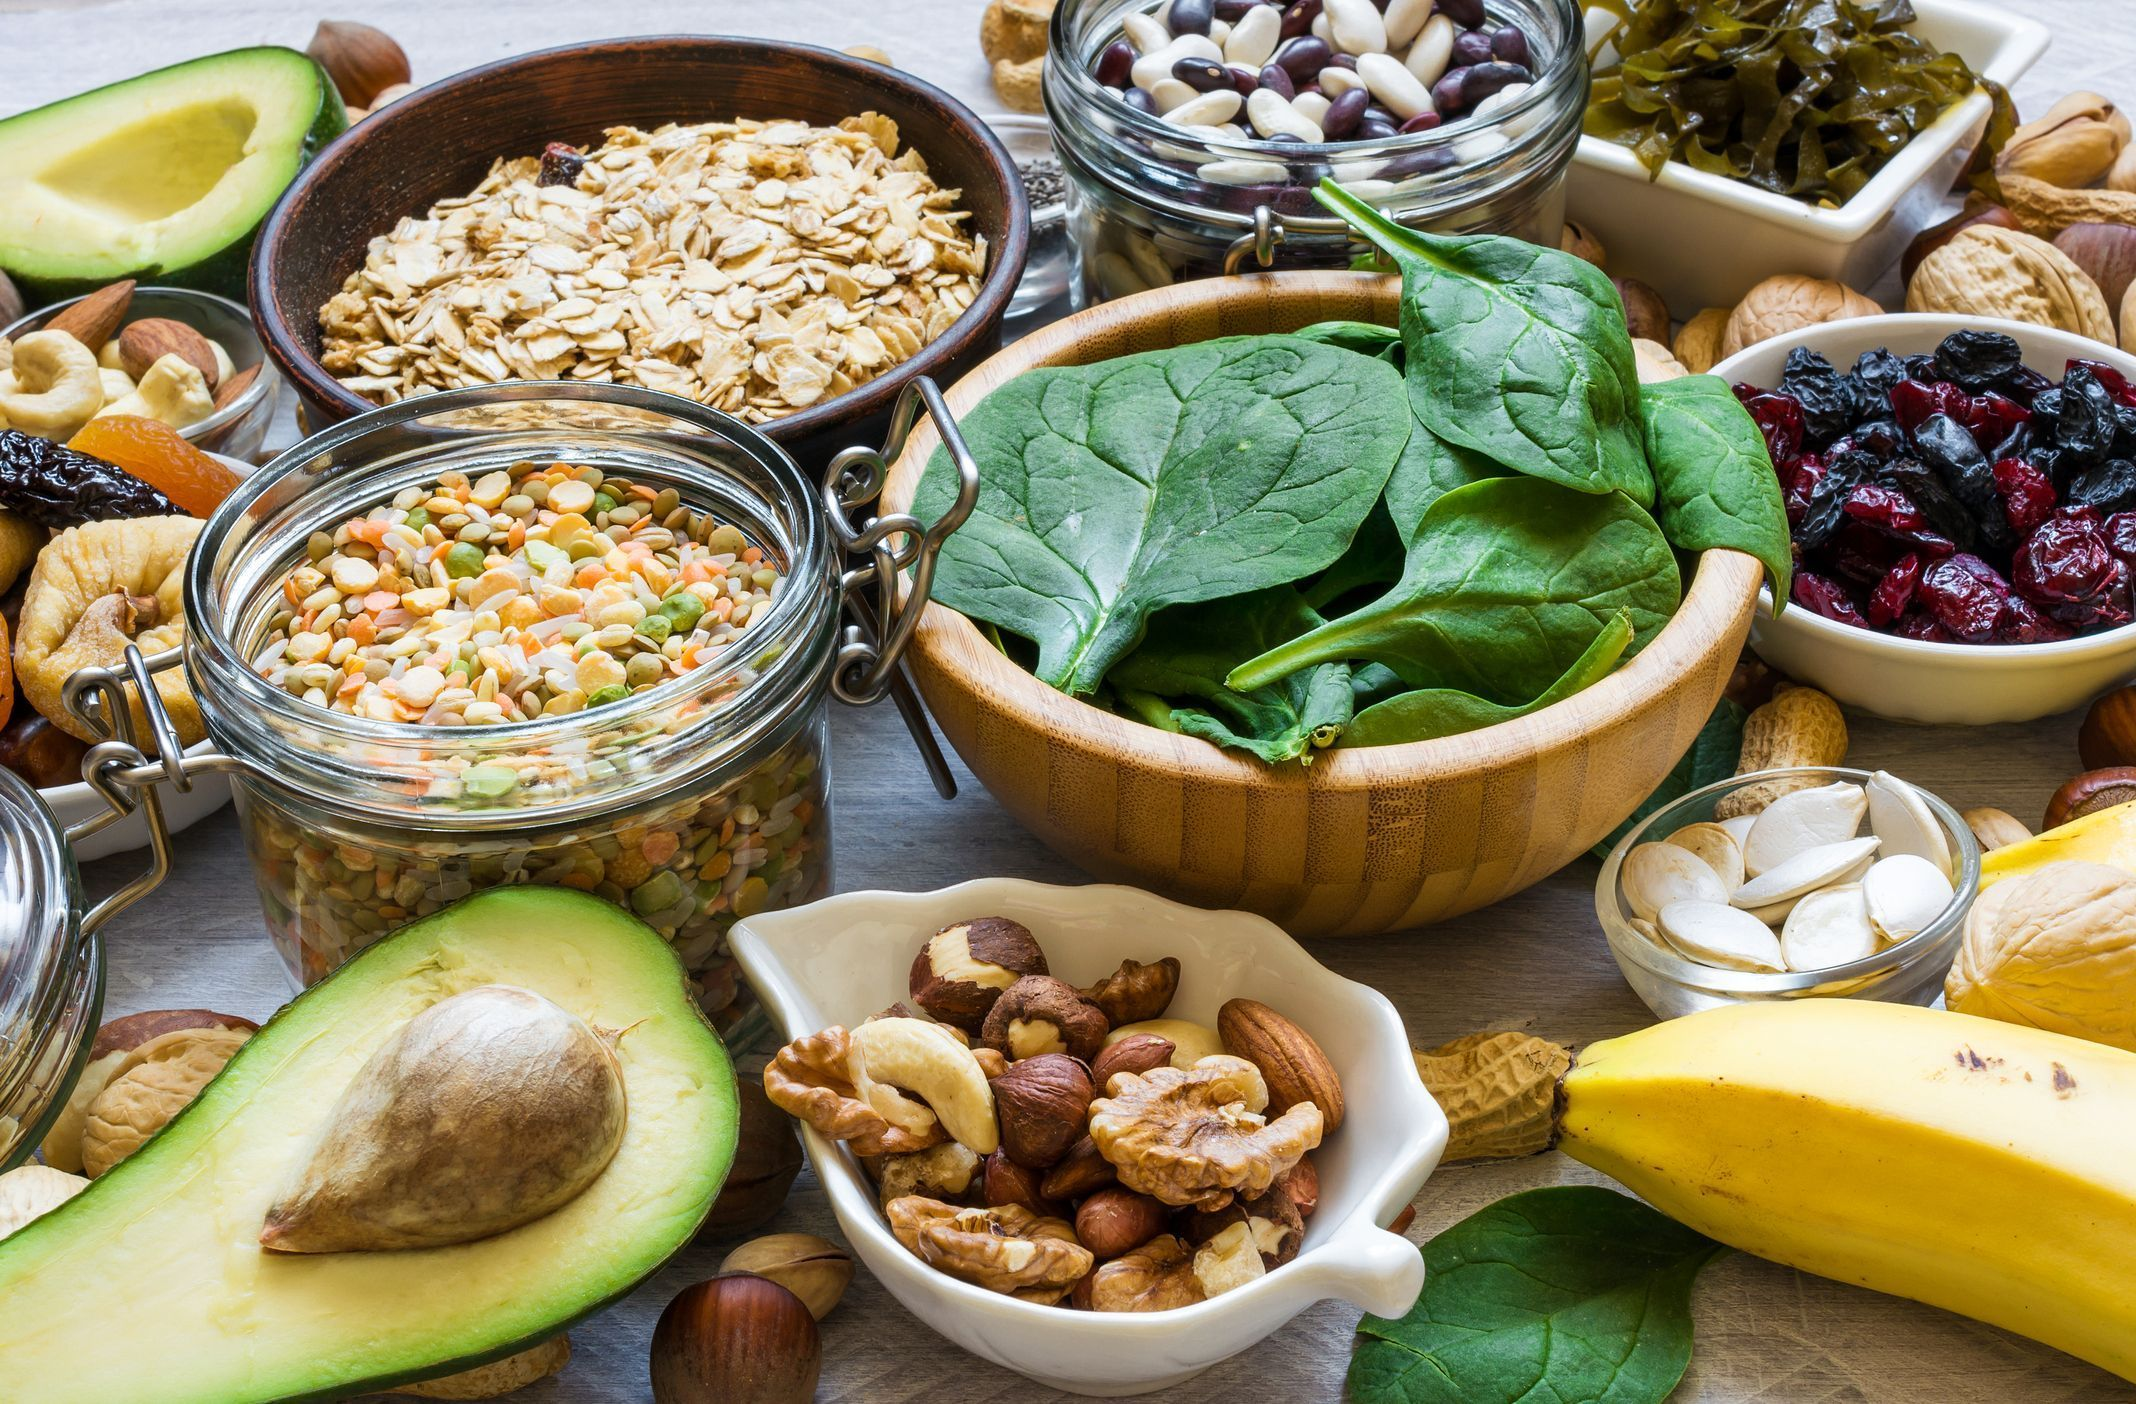 Find Out How Food Can Impact Your Crohn's Disease forecasting